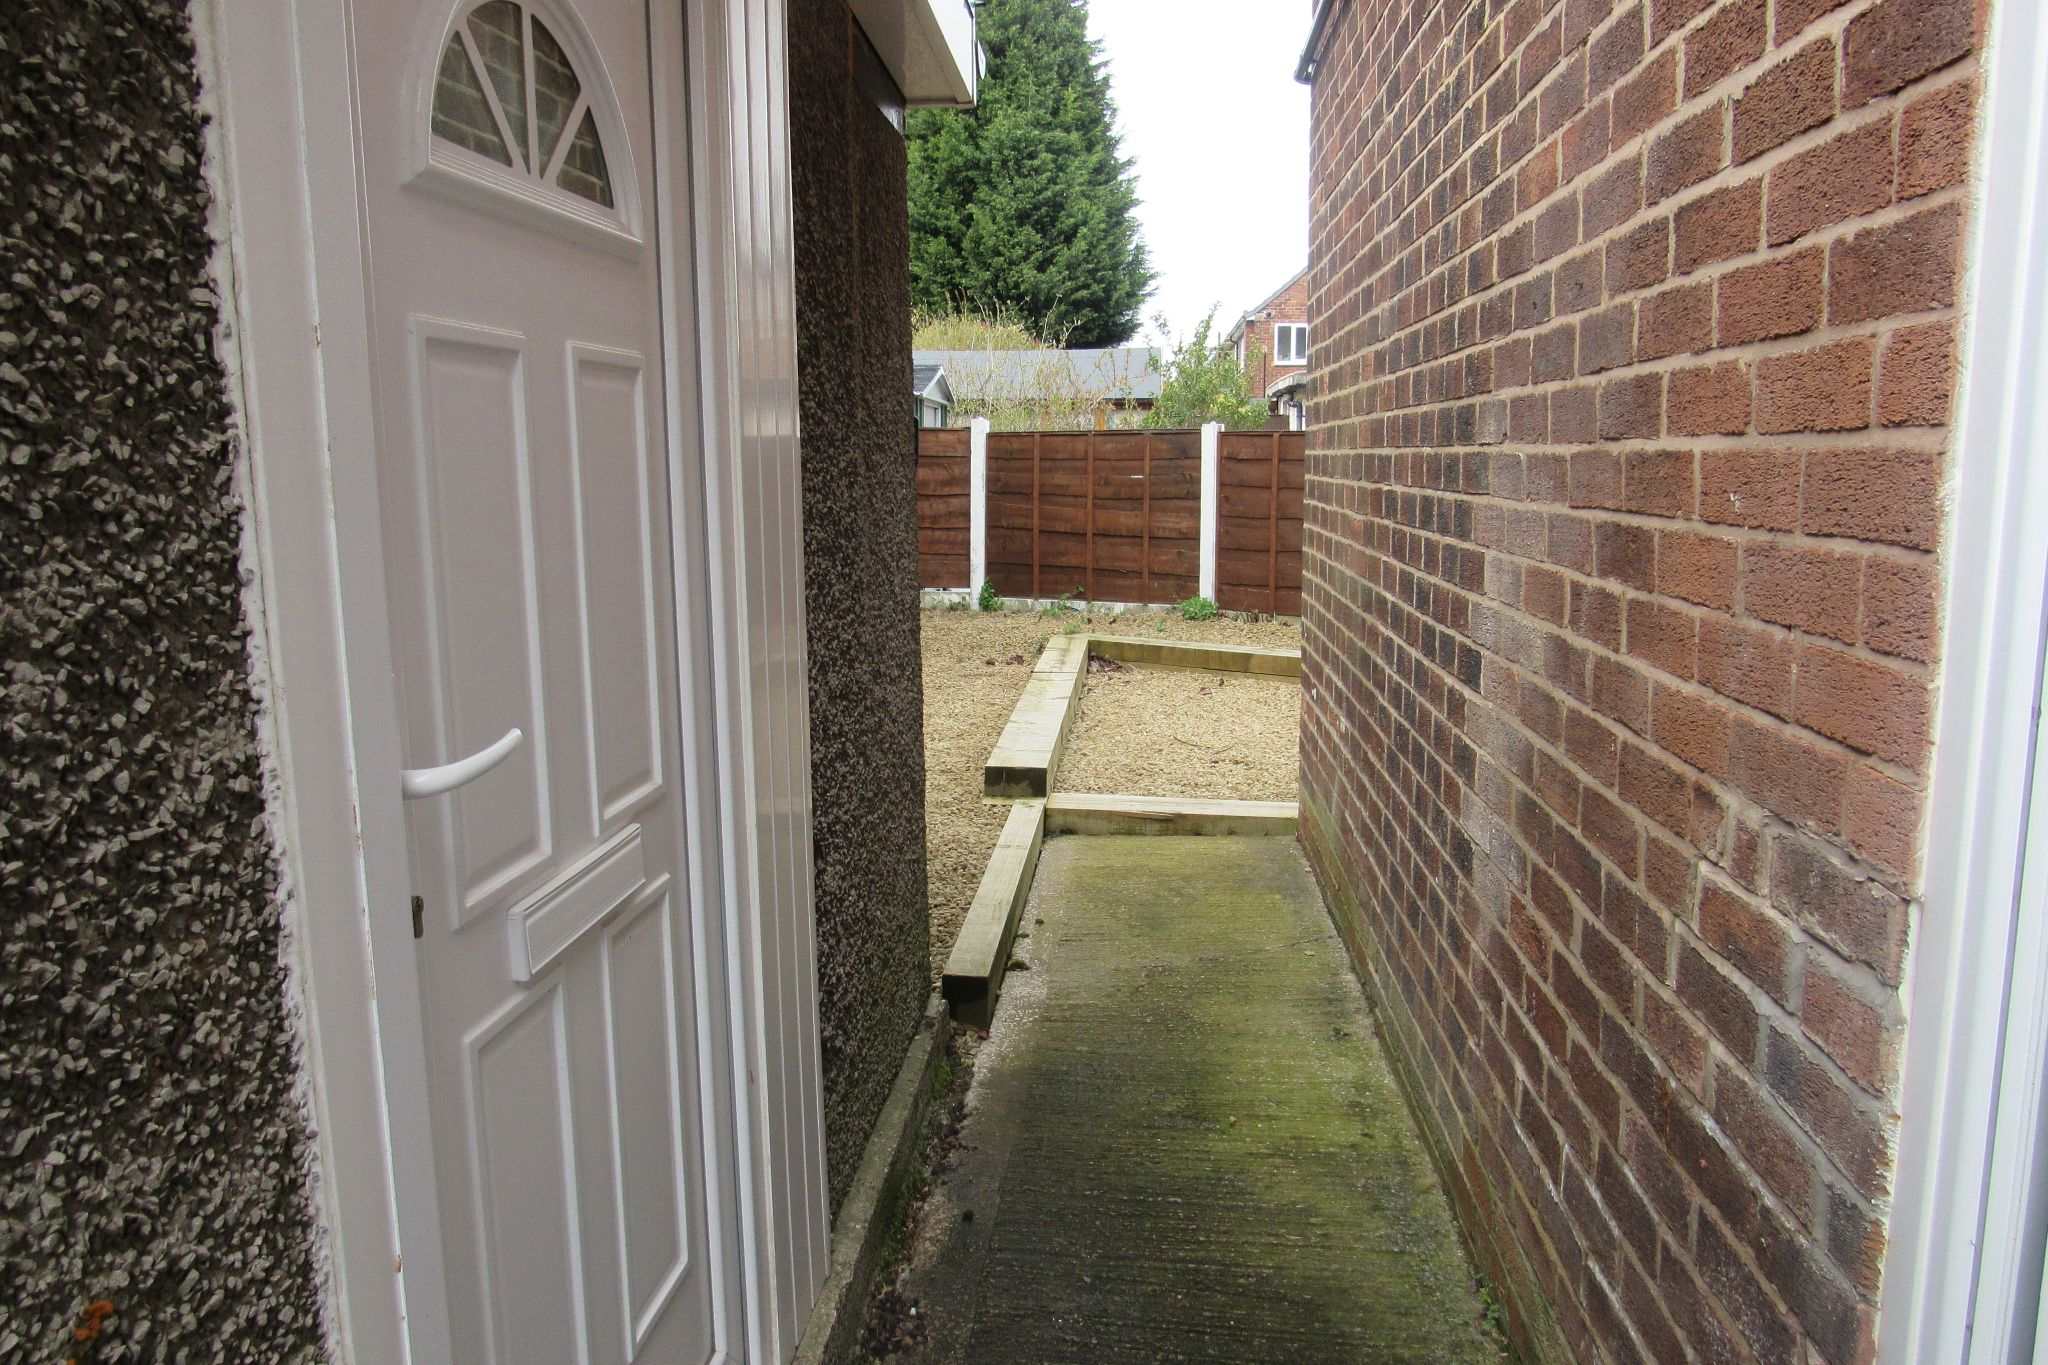 4 bedroom end terraced house SSTC in Manchester - Photograph 22.